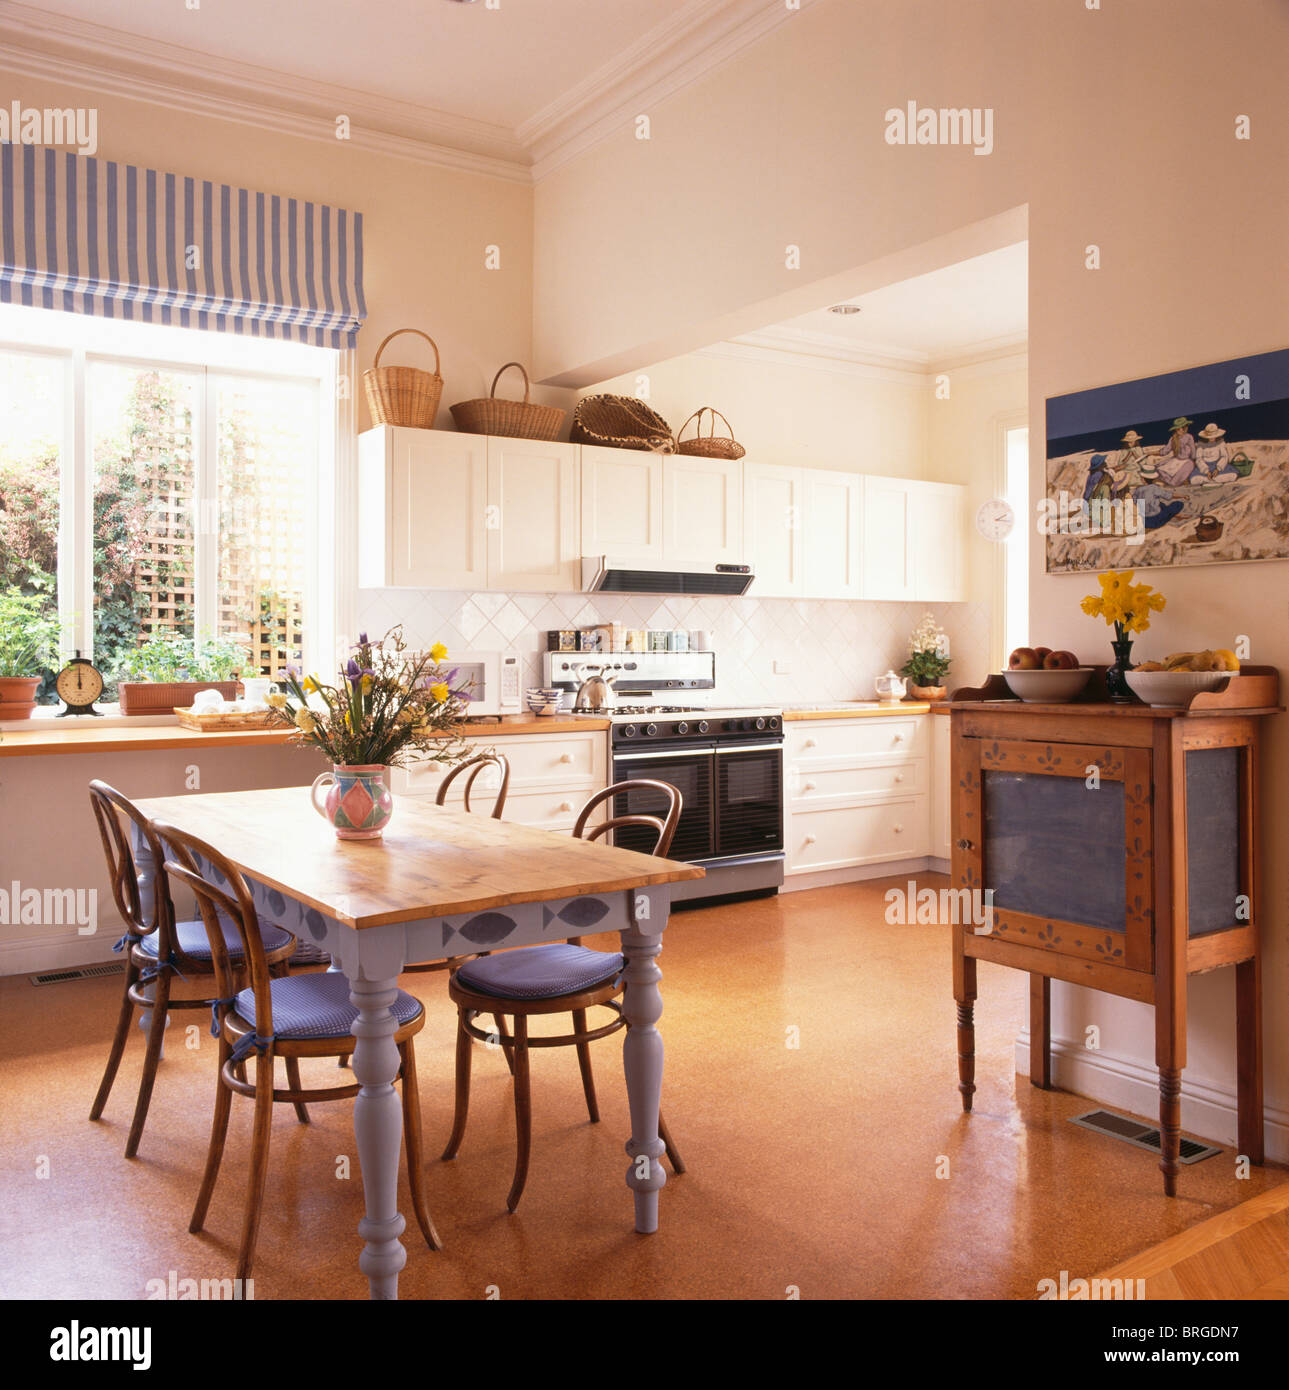 Cork Flooring In Modern Kitchen Dining Room With Bentwood Chairs With Blue  Cushions And Old Painted Pine Table Table